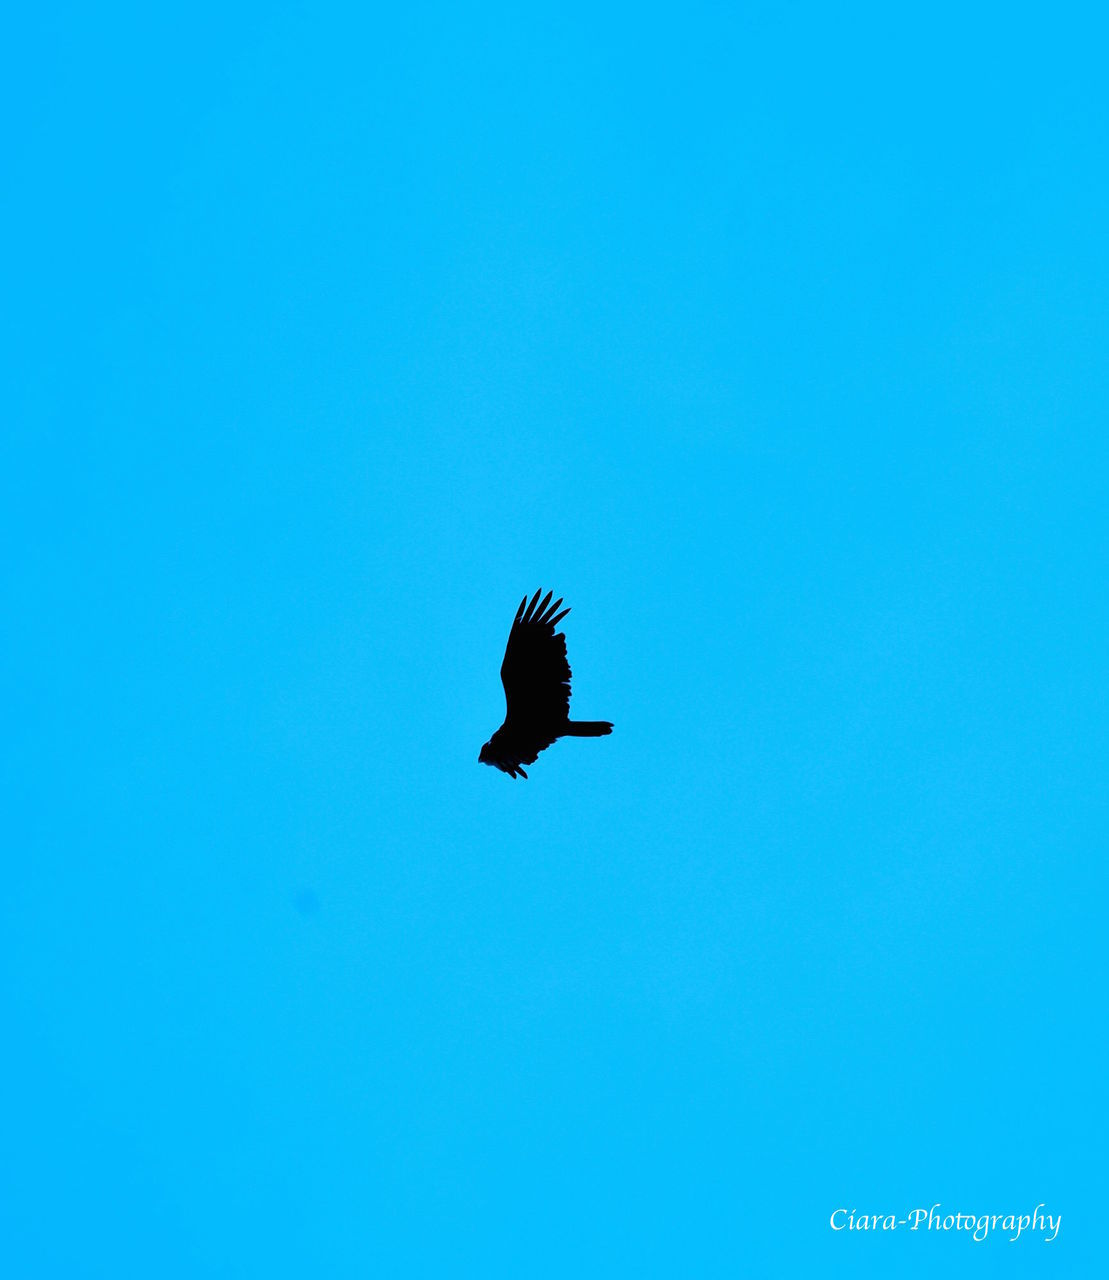 flying, bird, copy space, animals in the wild, clear sky, low angle view, one animal, blue, spread wings, animal themes, animal wildlife, mid-air, outdoors, nature, no people, day, bird of prey